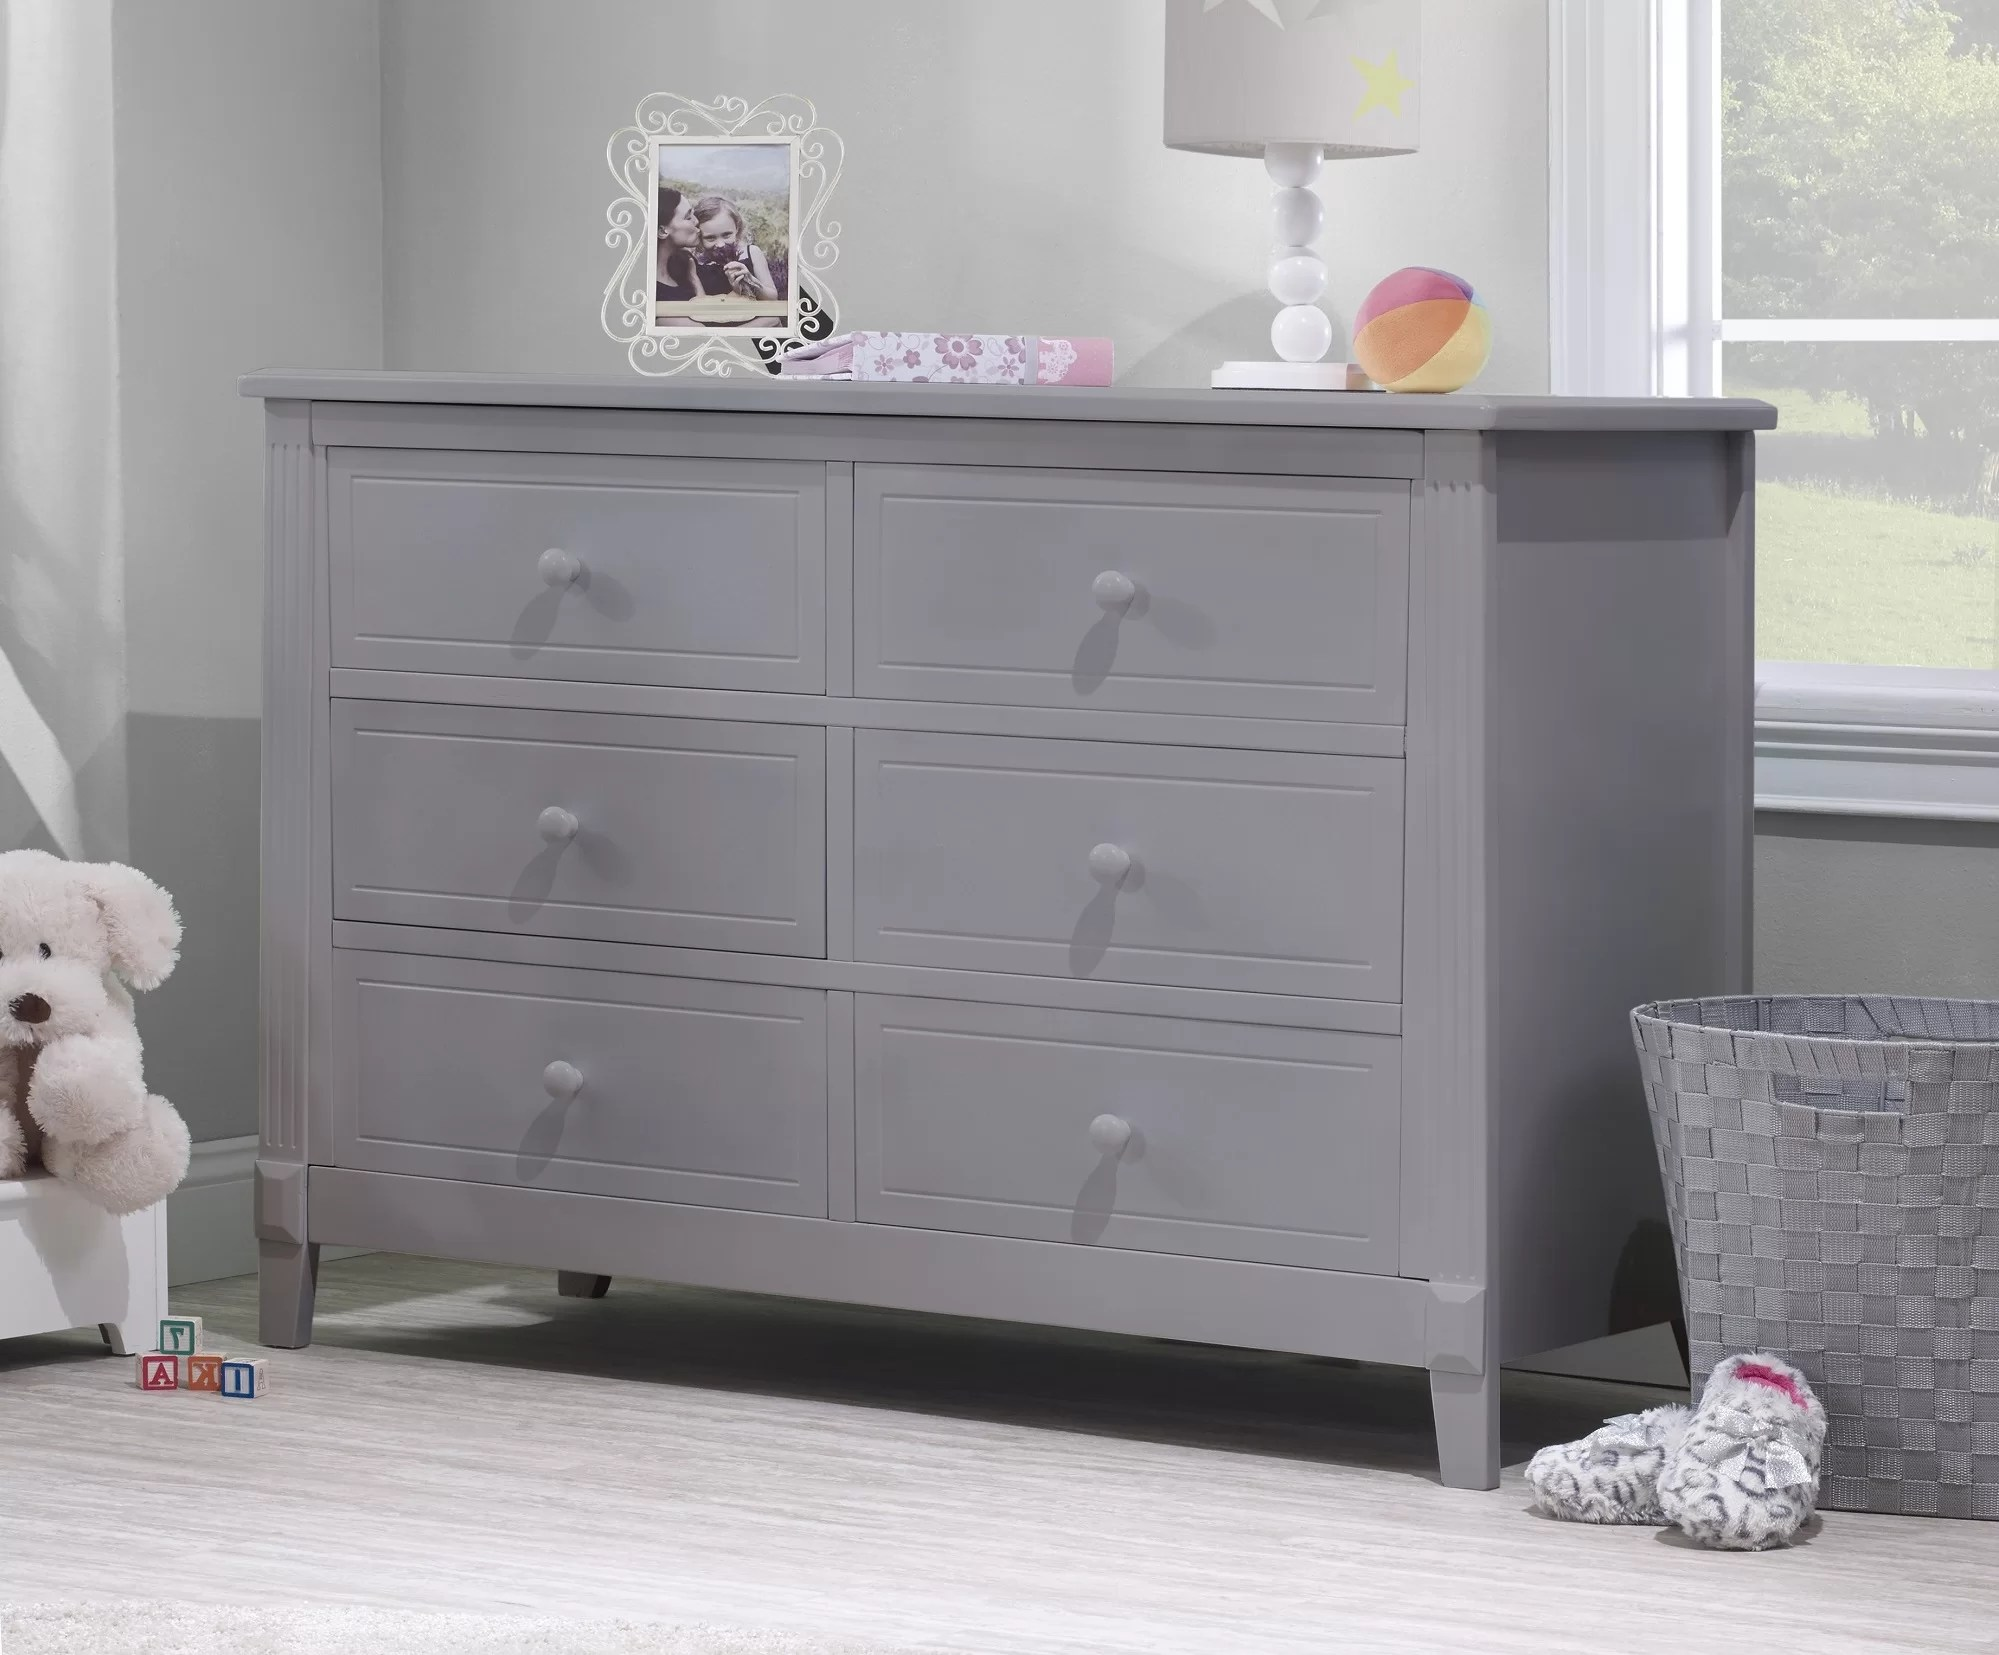 Some nursery dressers & armoires can be shipped to you at home, while others can be picked up in store. espresso wood baby kids dressers you